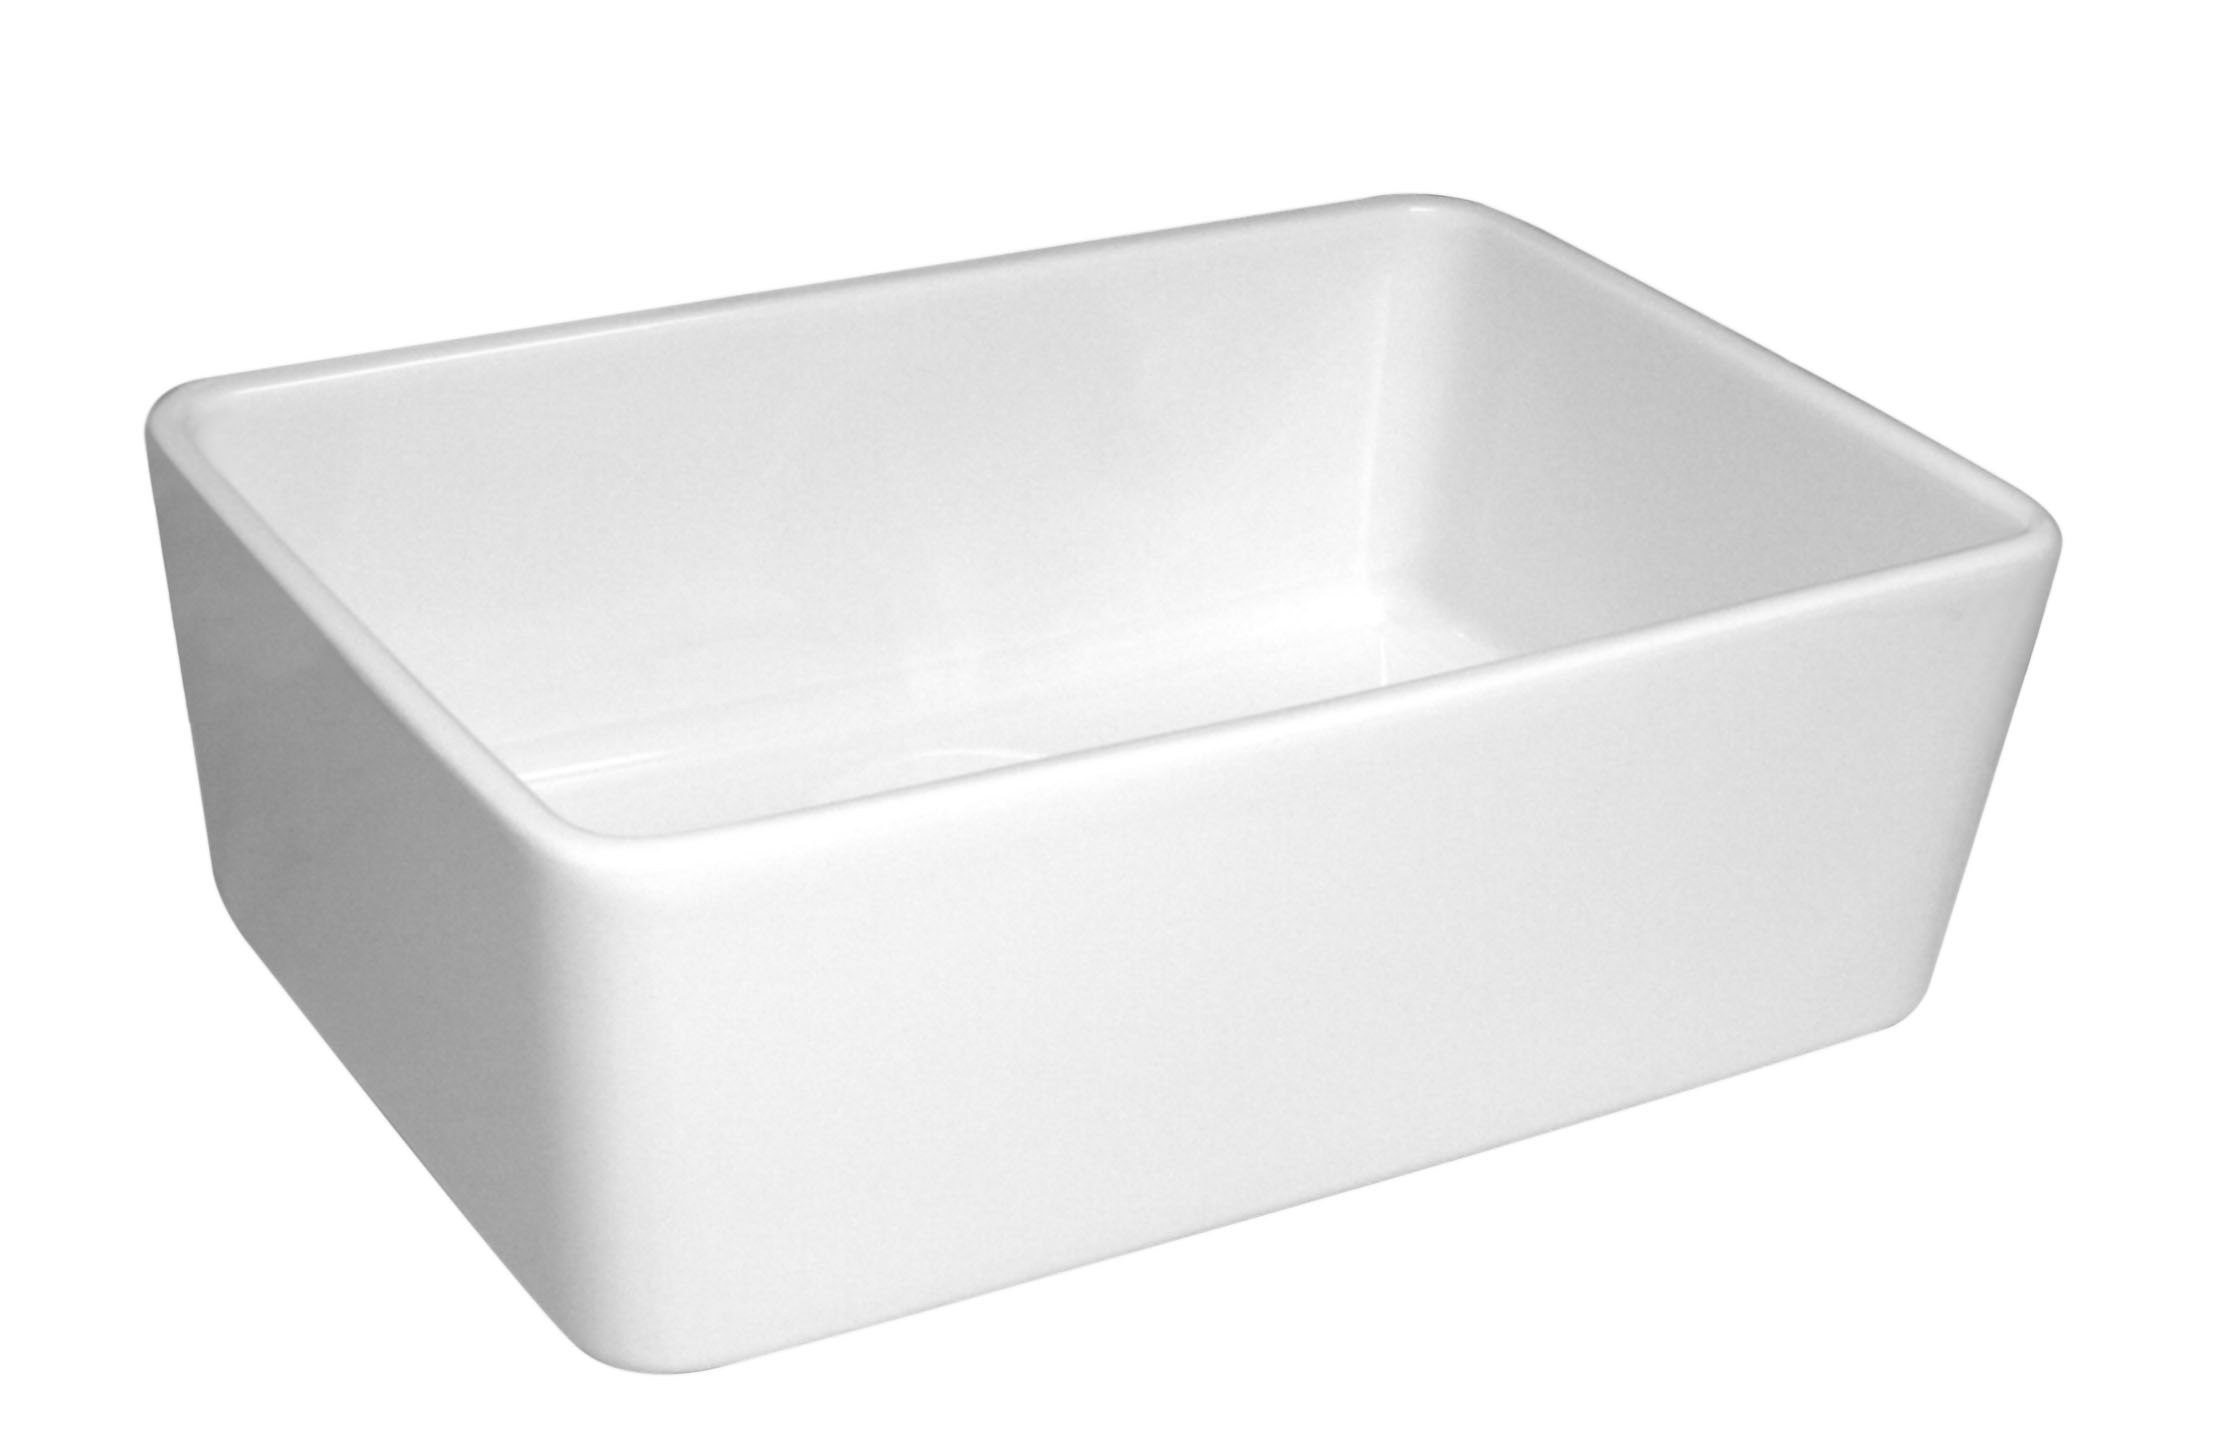 WHITEHAUS WHB5033 BASICHAUS 23.5 INCH SINGLE BOWL FIRECLAY SINK W/ A SMOOTH FRONT APRON